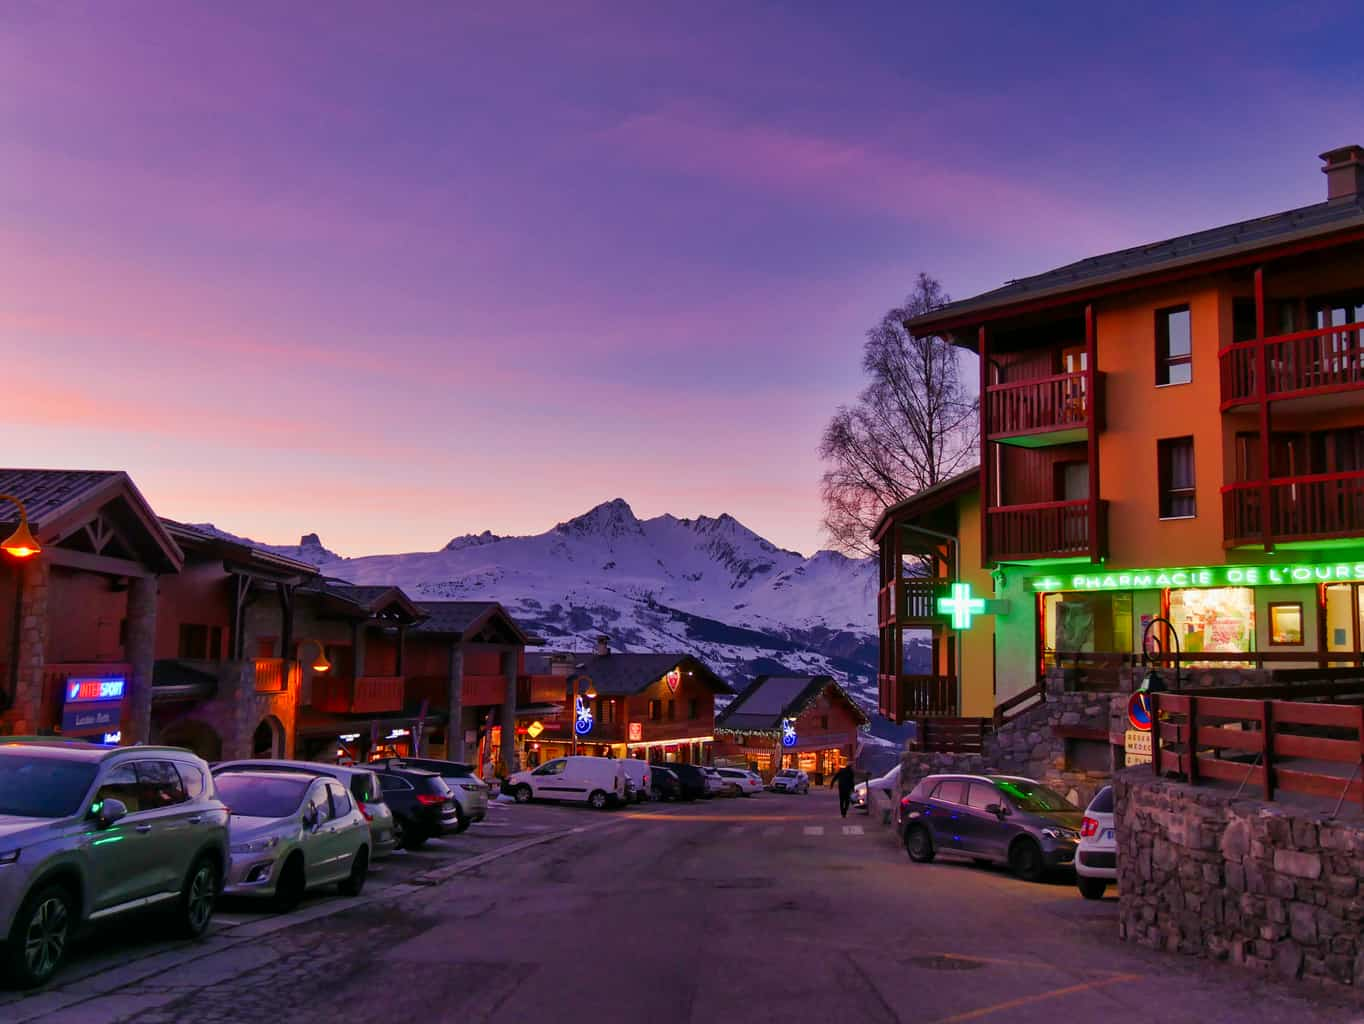 Wooden buildings with shops in Peisey-Vallandry in the evening with a purple and pink sky with snowy mountains in the background